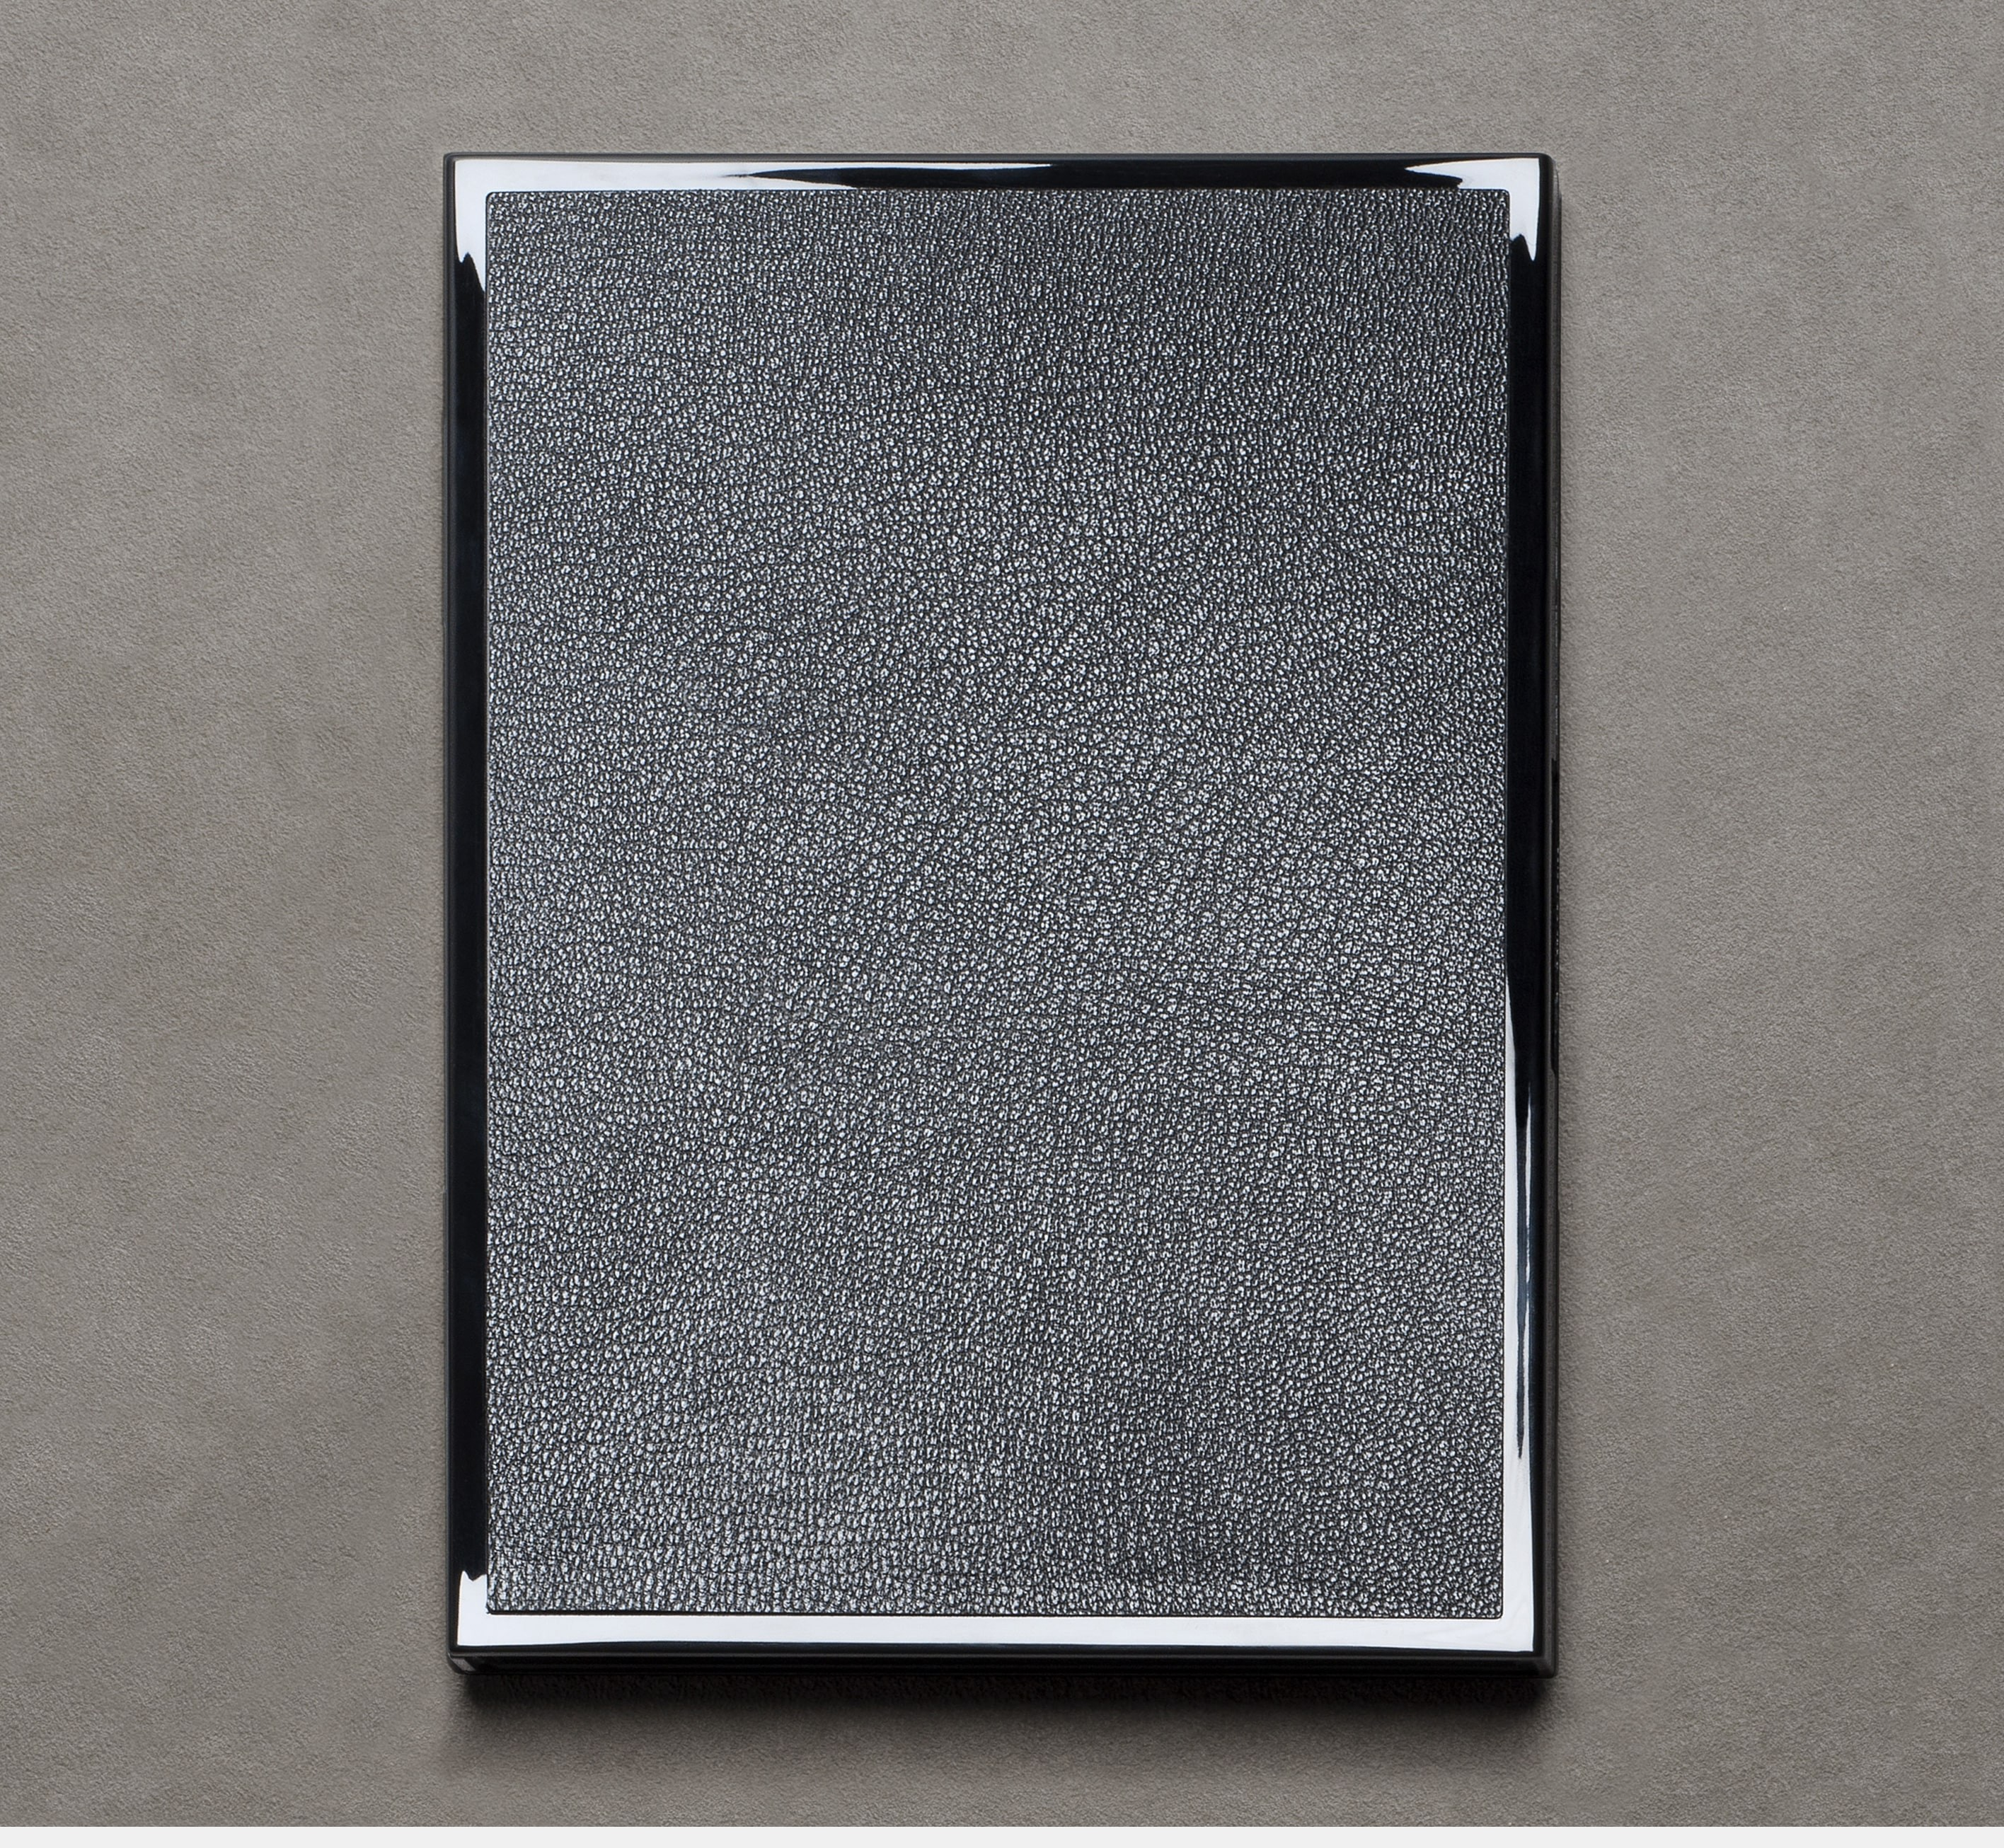 le-carnet-1219-black-lacquered-embbeded-with-leather